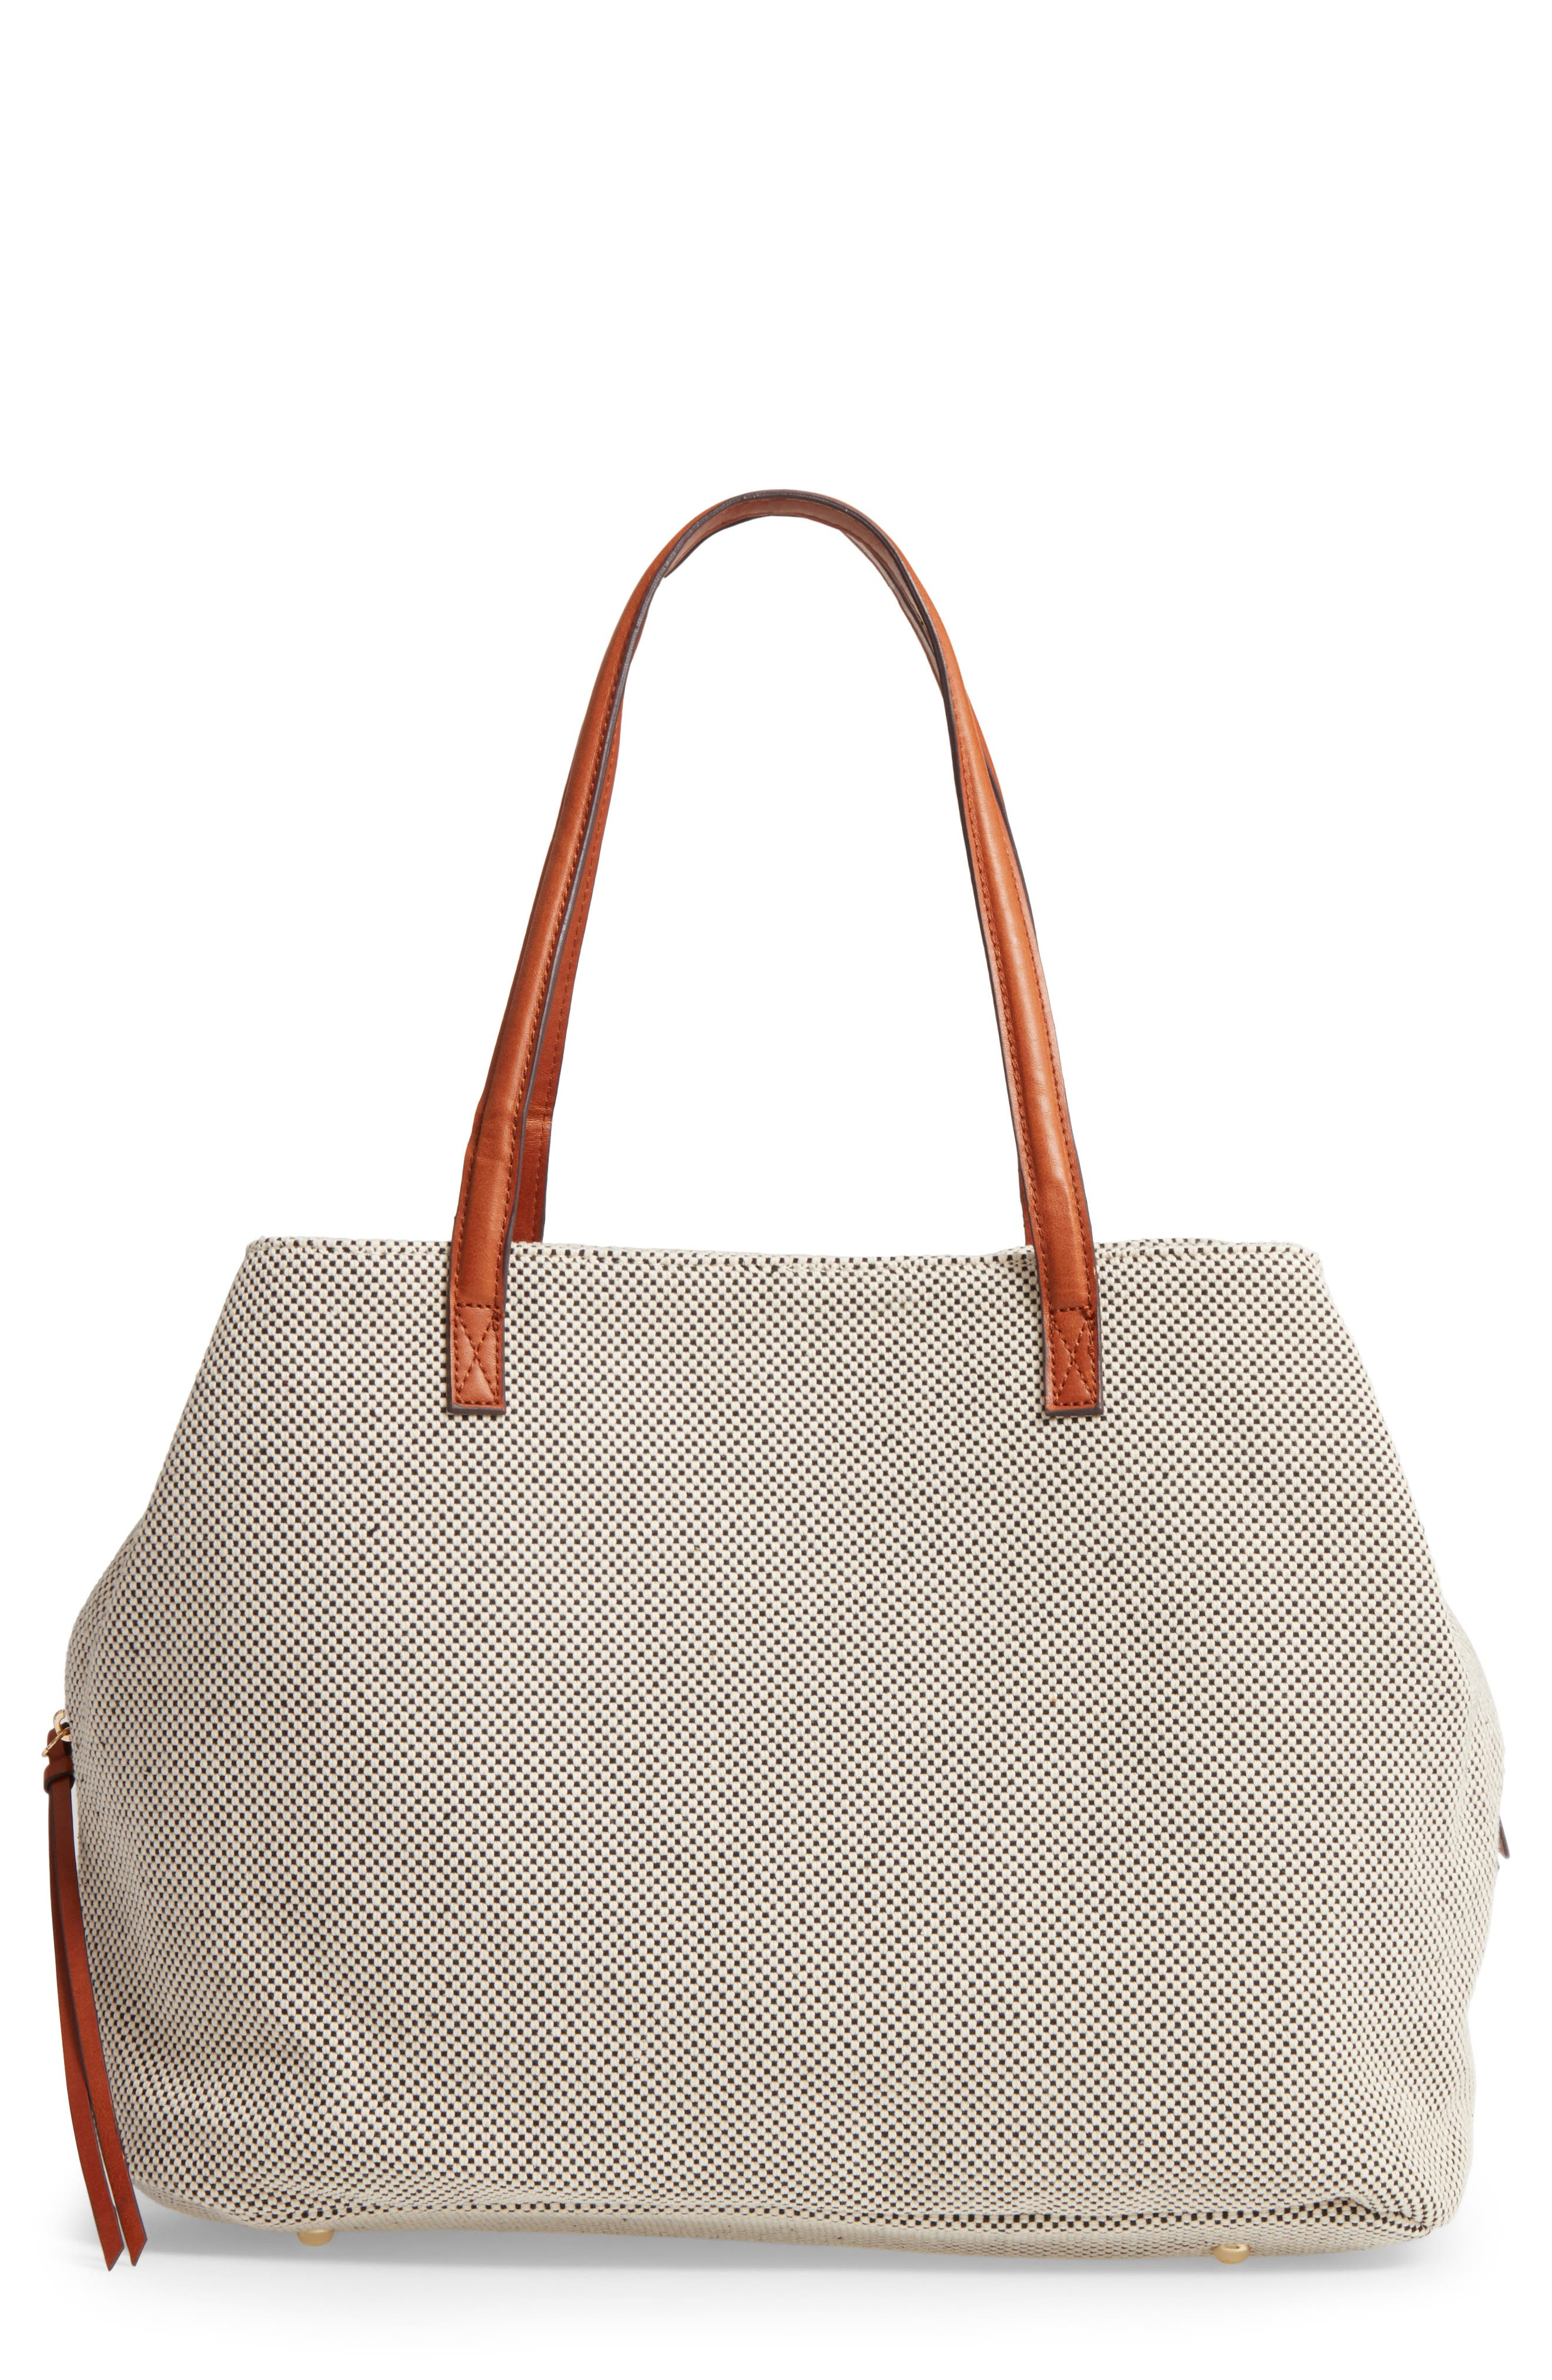 Main Image - Sole Society 'Oversize Millie' Tote